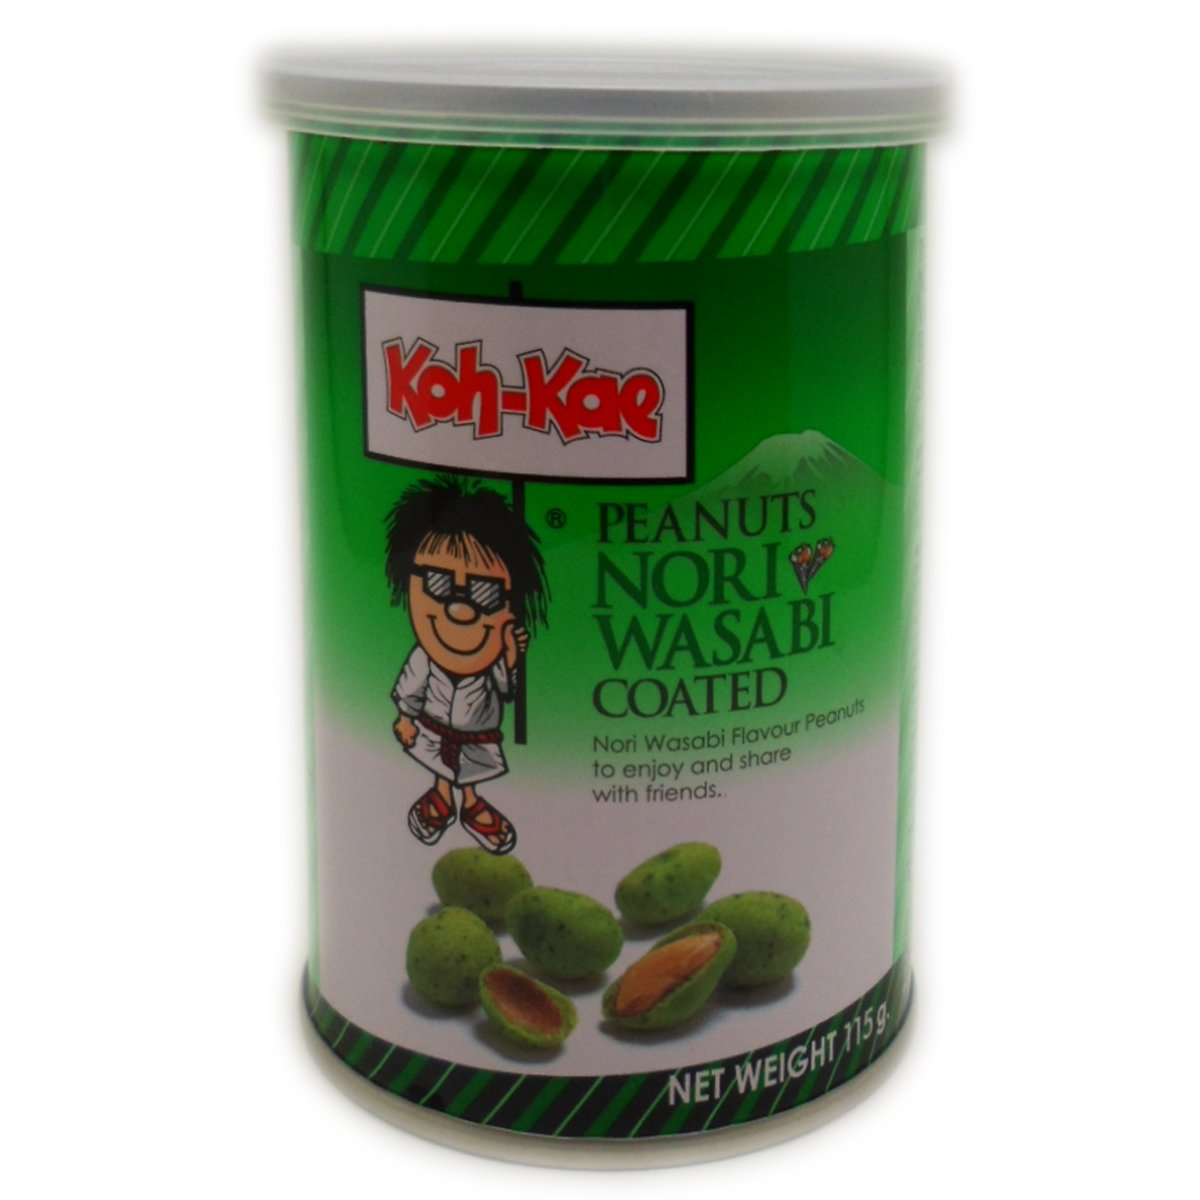 Koh-kae Snack Peanut Nori Wasabi Flavour Coated 115 G (4.06 Oz) X 4 Cans by Mae-Ruay Snack Food Factory Co Ltd. Bangkok Thaila [Foods]